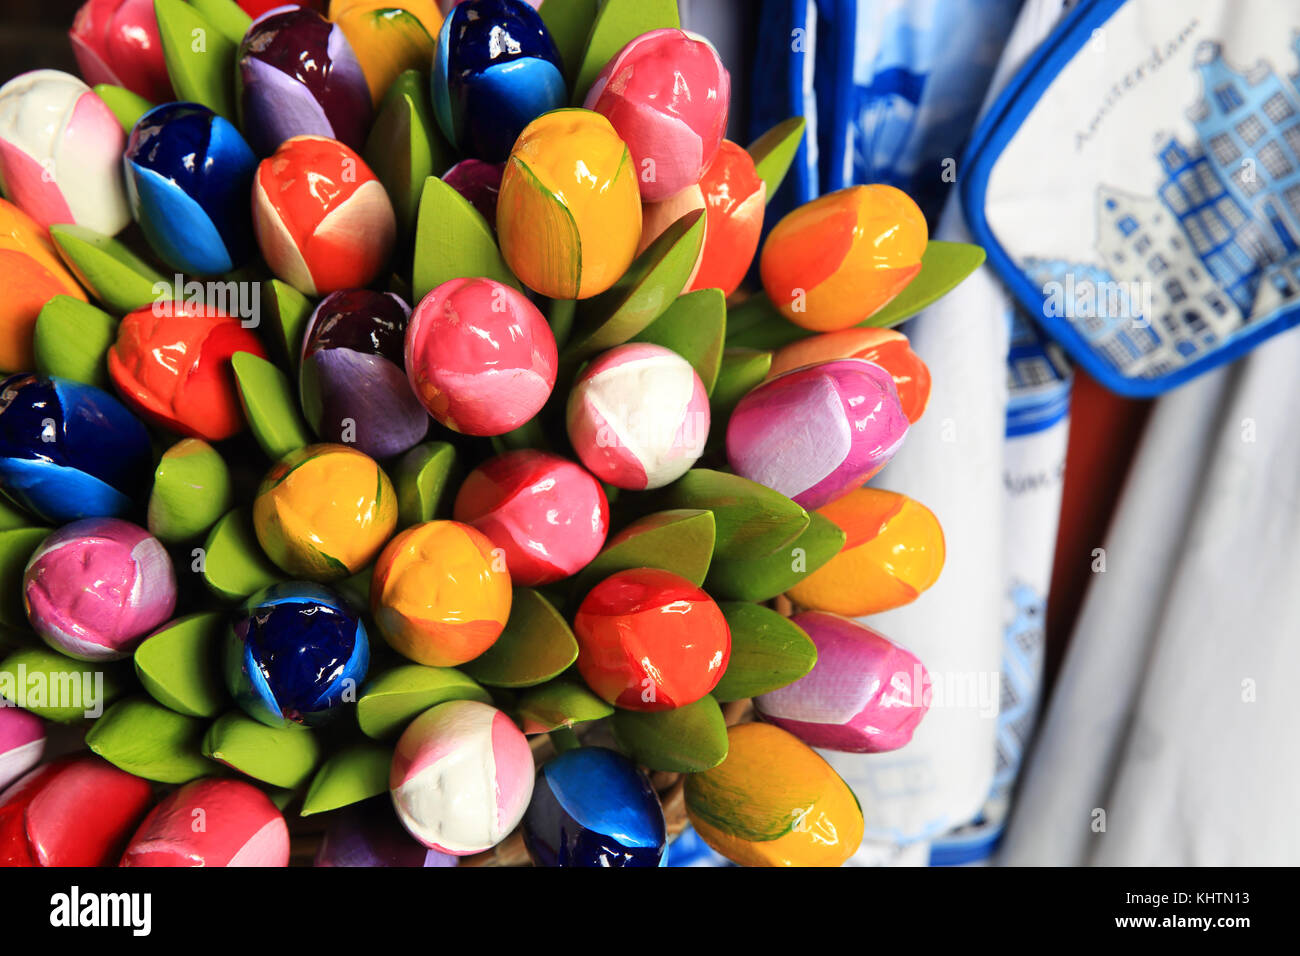 Wooden tulips for sale on the world famous floating flower market on the Singel canal, in Amsterdam in the Netherlands - Stock Image